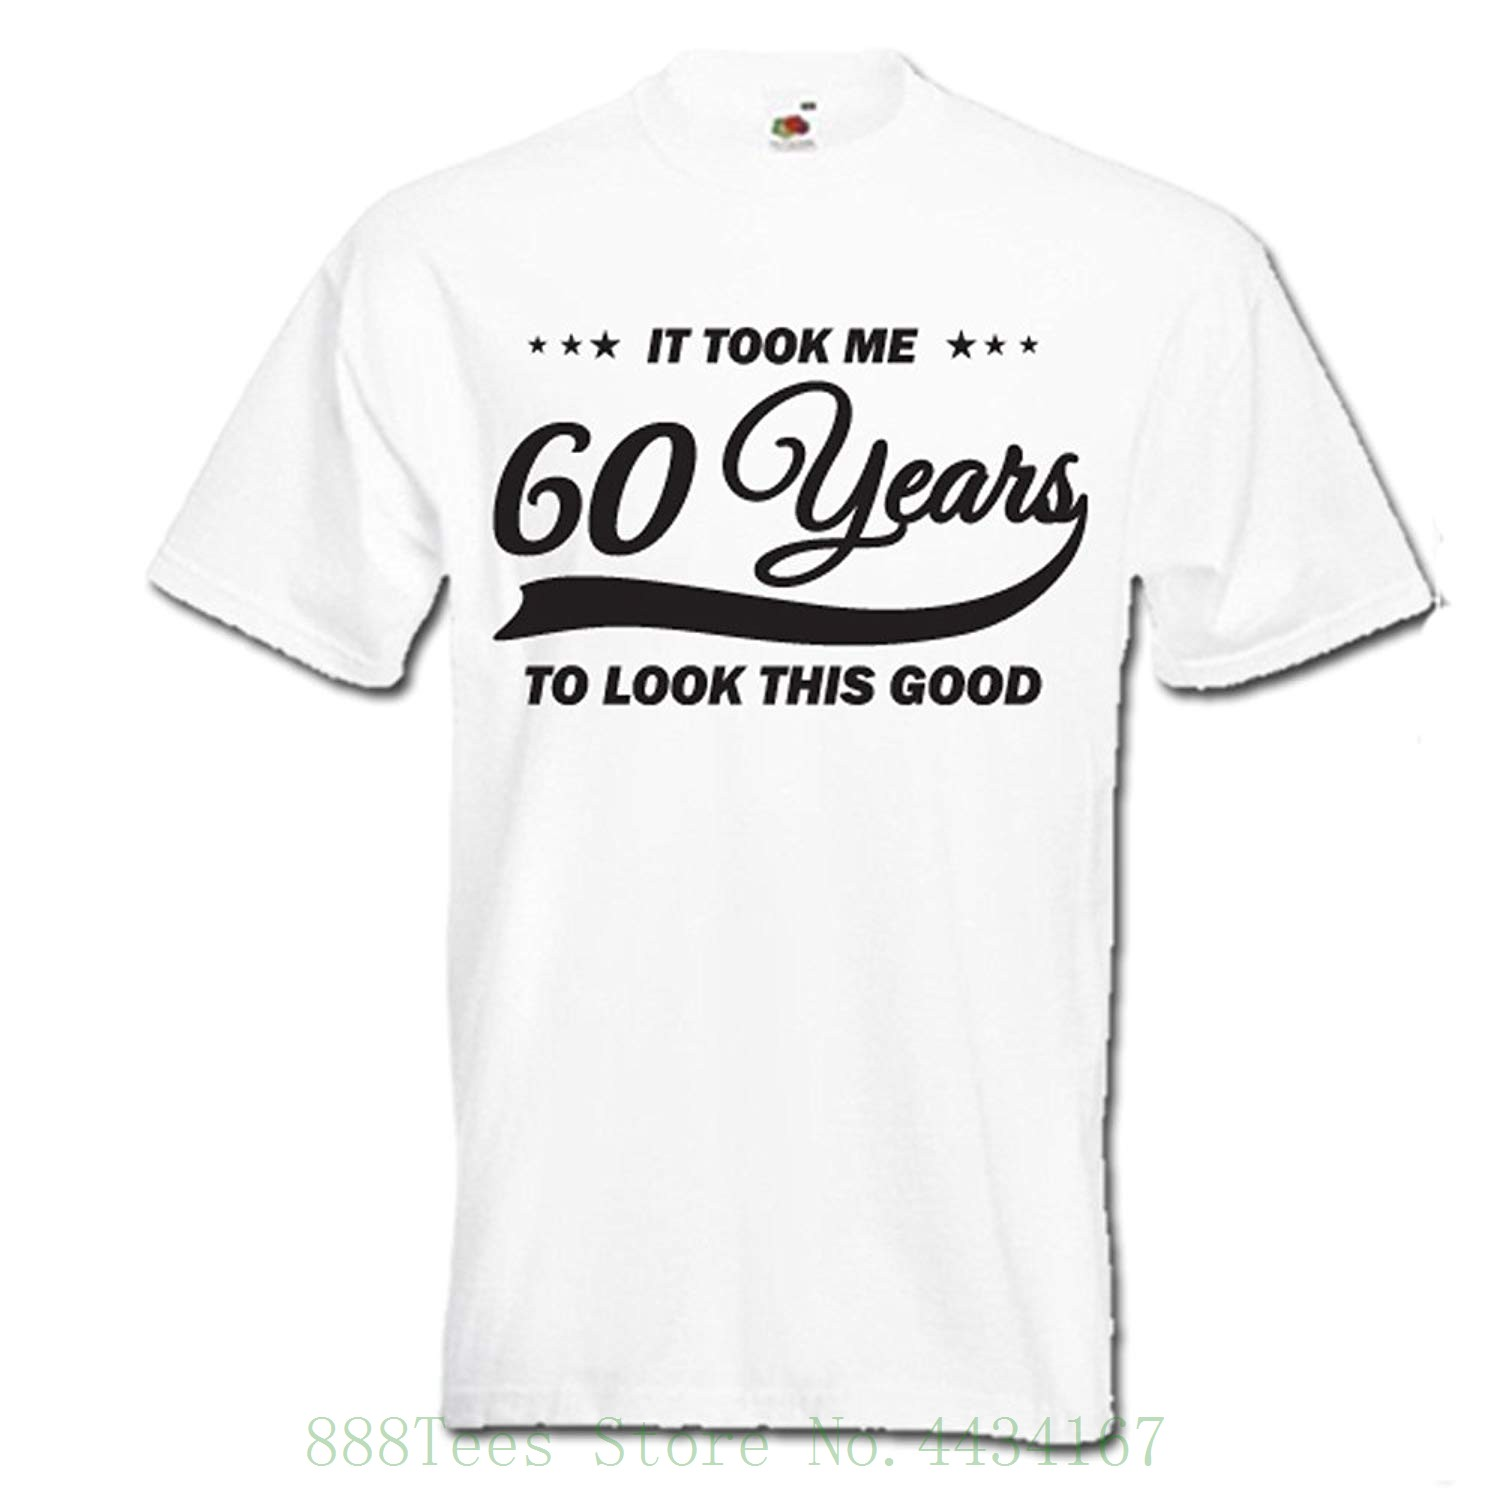 It Took Me 60 Years To Look This Good Funny 60th Birthday Gift Idea Mens Womens Unisex T Shirt Tshirt Casual O Neck